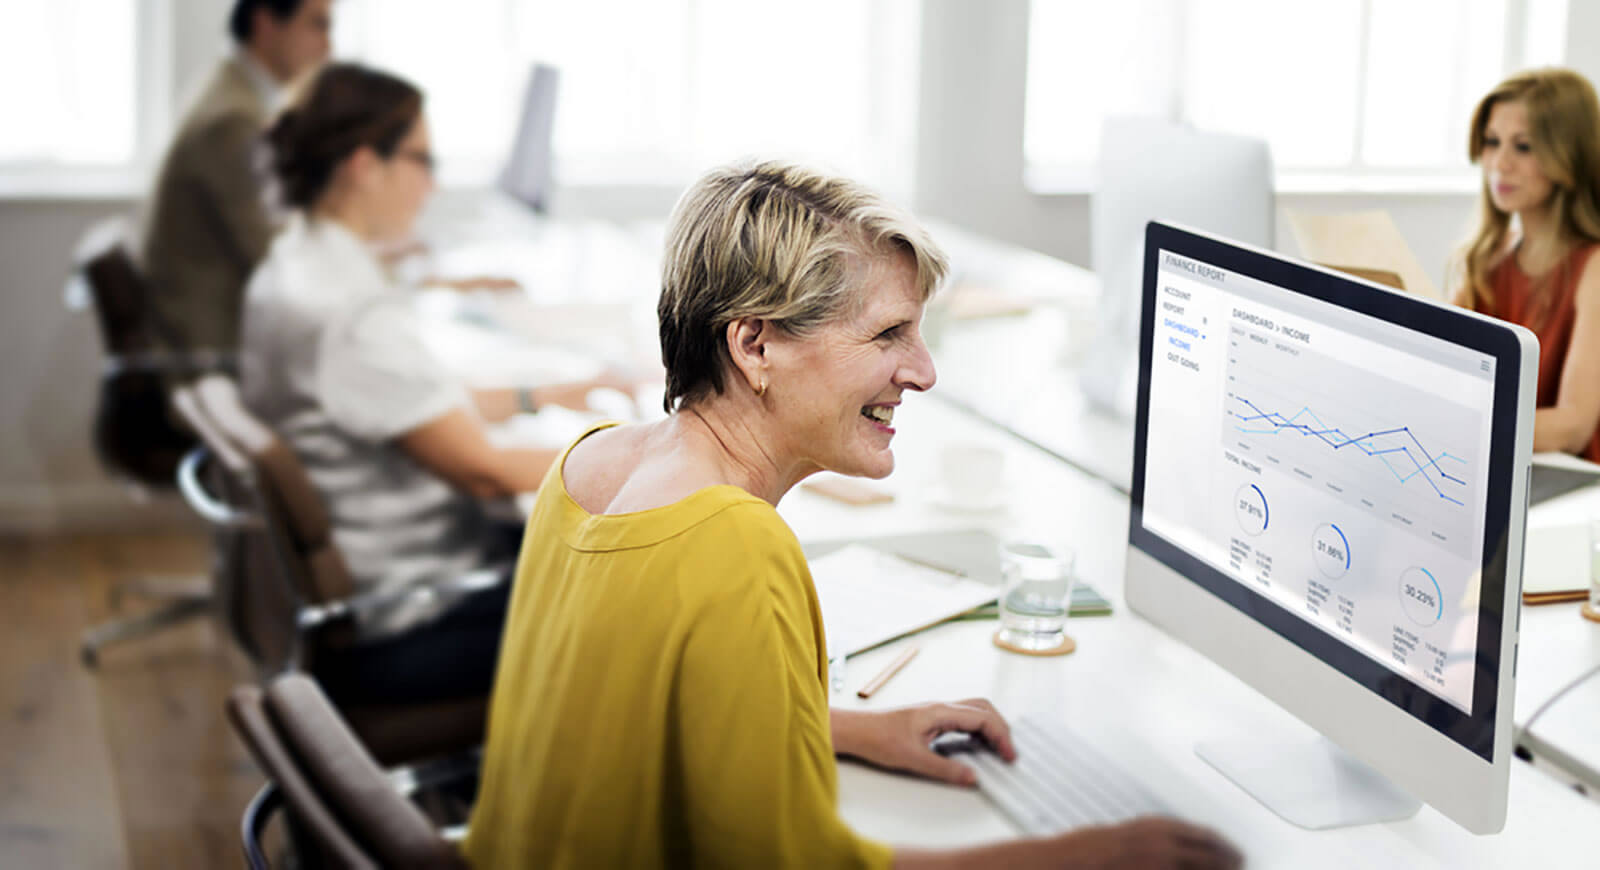 Photo of a lady at her desk looking at charts on her computer